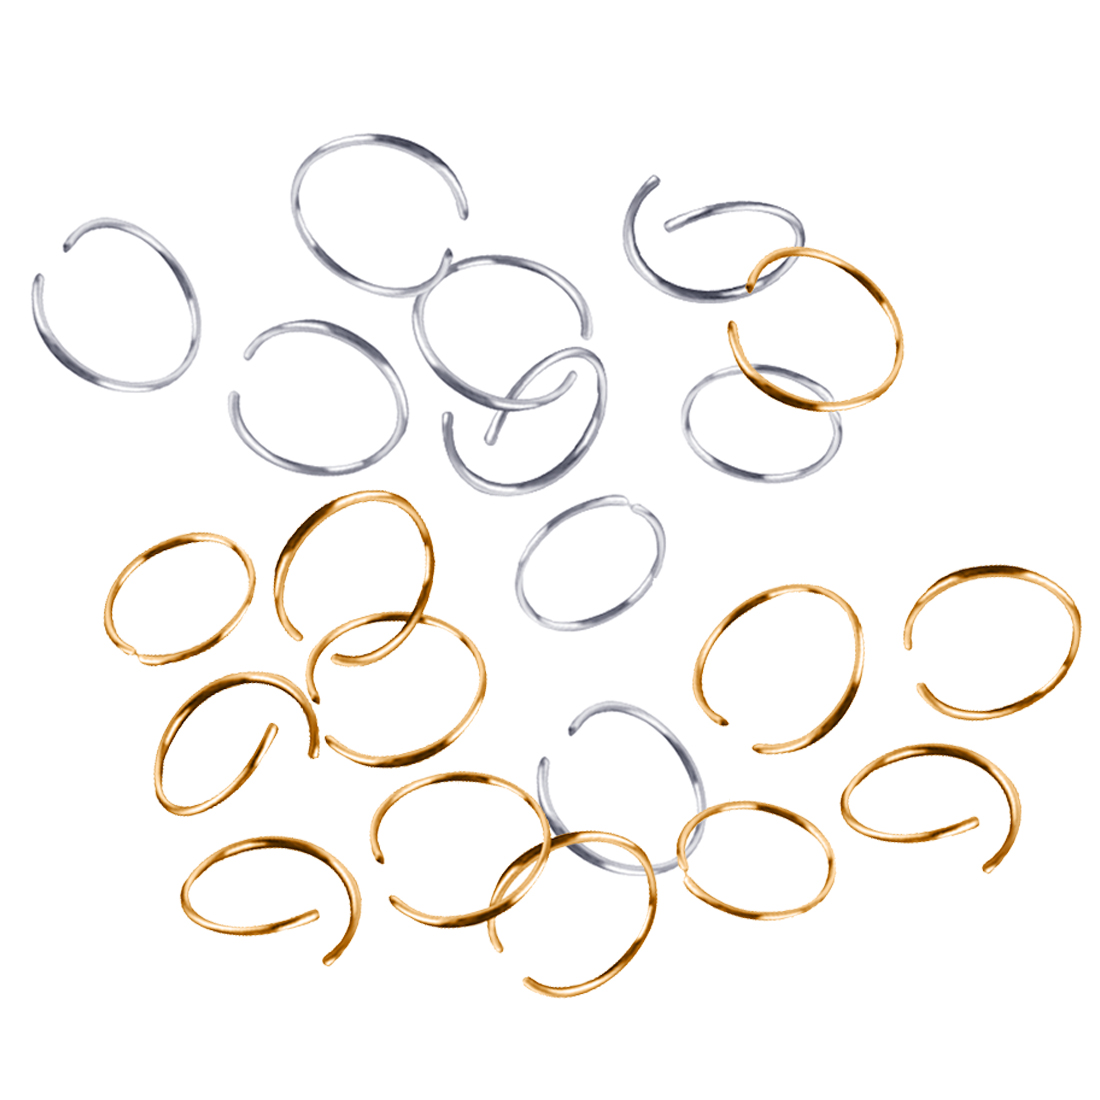 20PCS/Lot Hair Braid Dreadlock Bead Golden Silver Hair Rings  Cuff Clip Braid Hoop Circle Inner Diameter 10mm Men Women